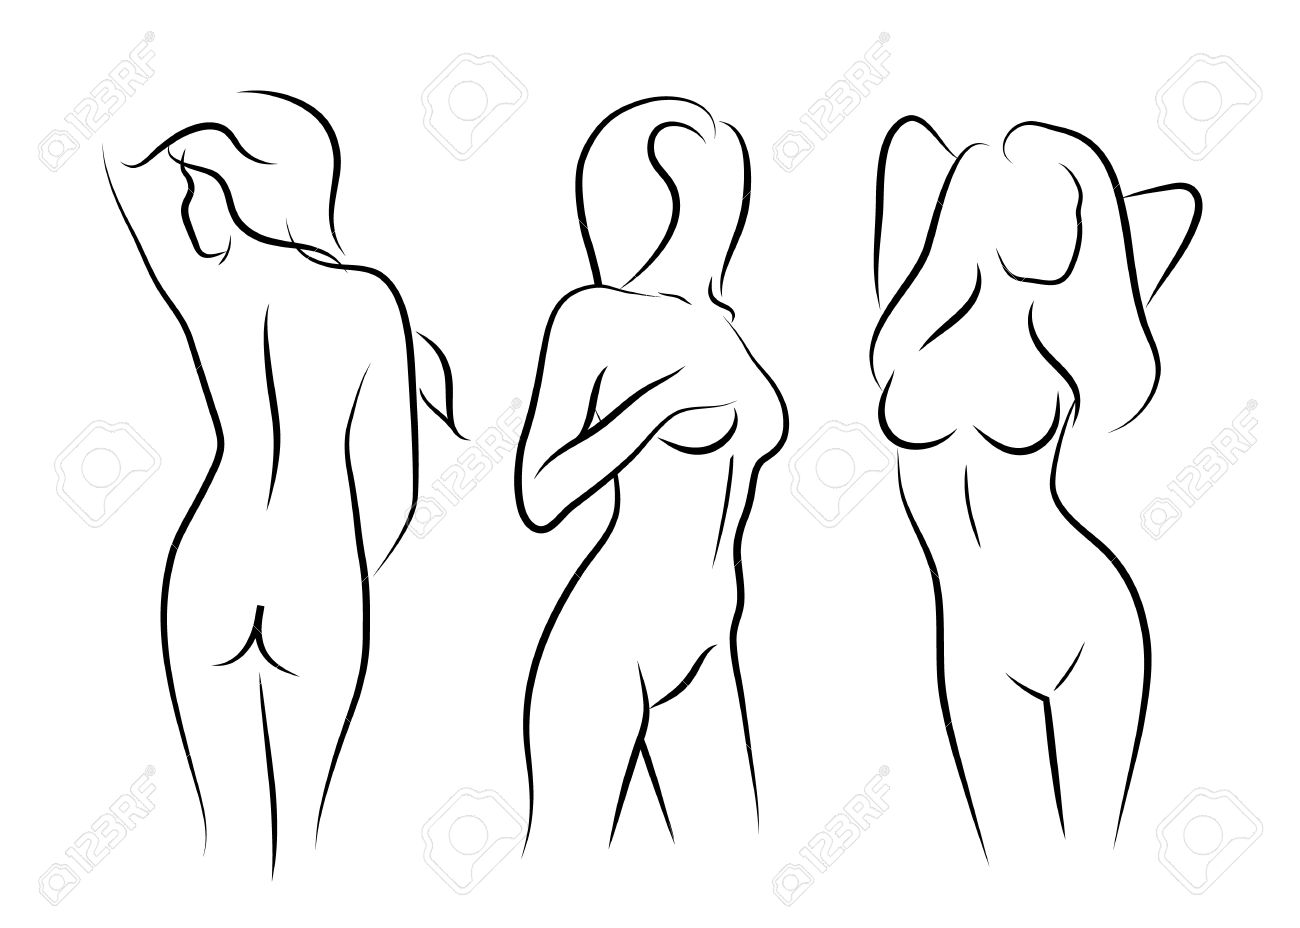 Illustrations Vector Women Naked Art Beauty Body Drawing Stock